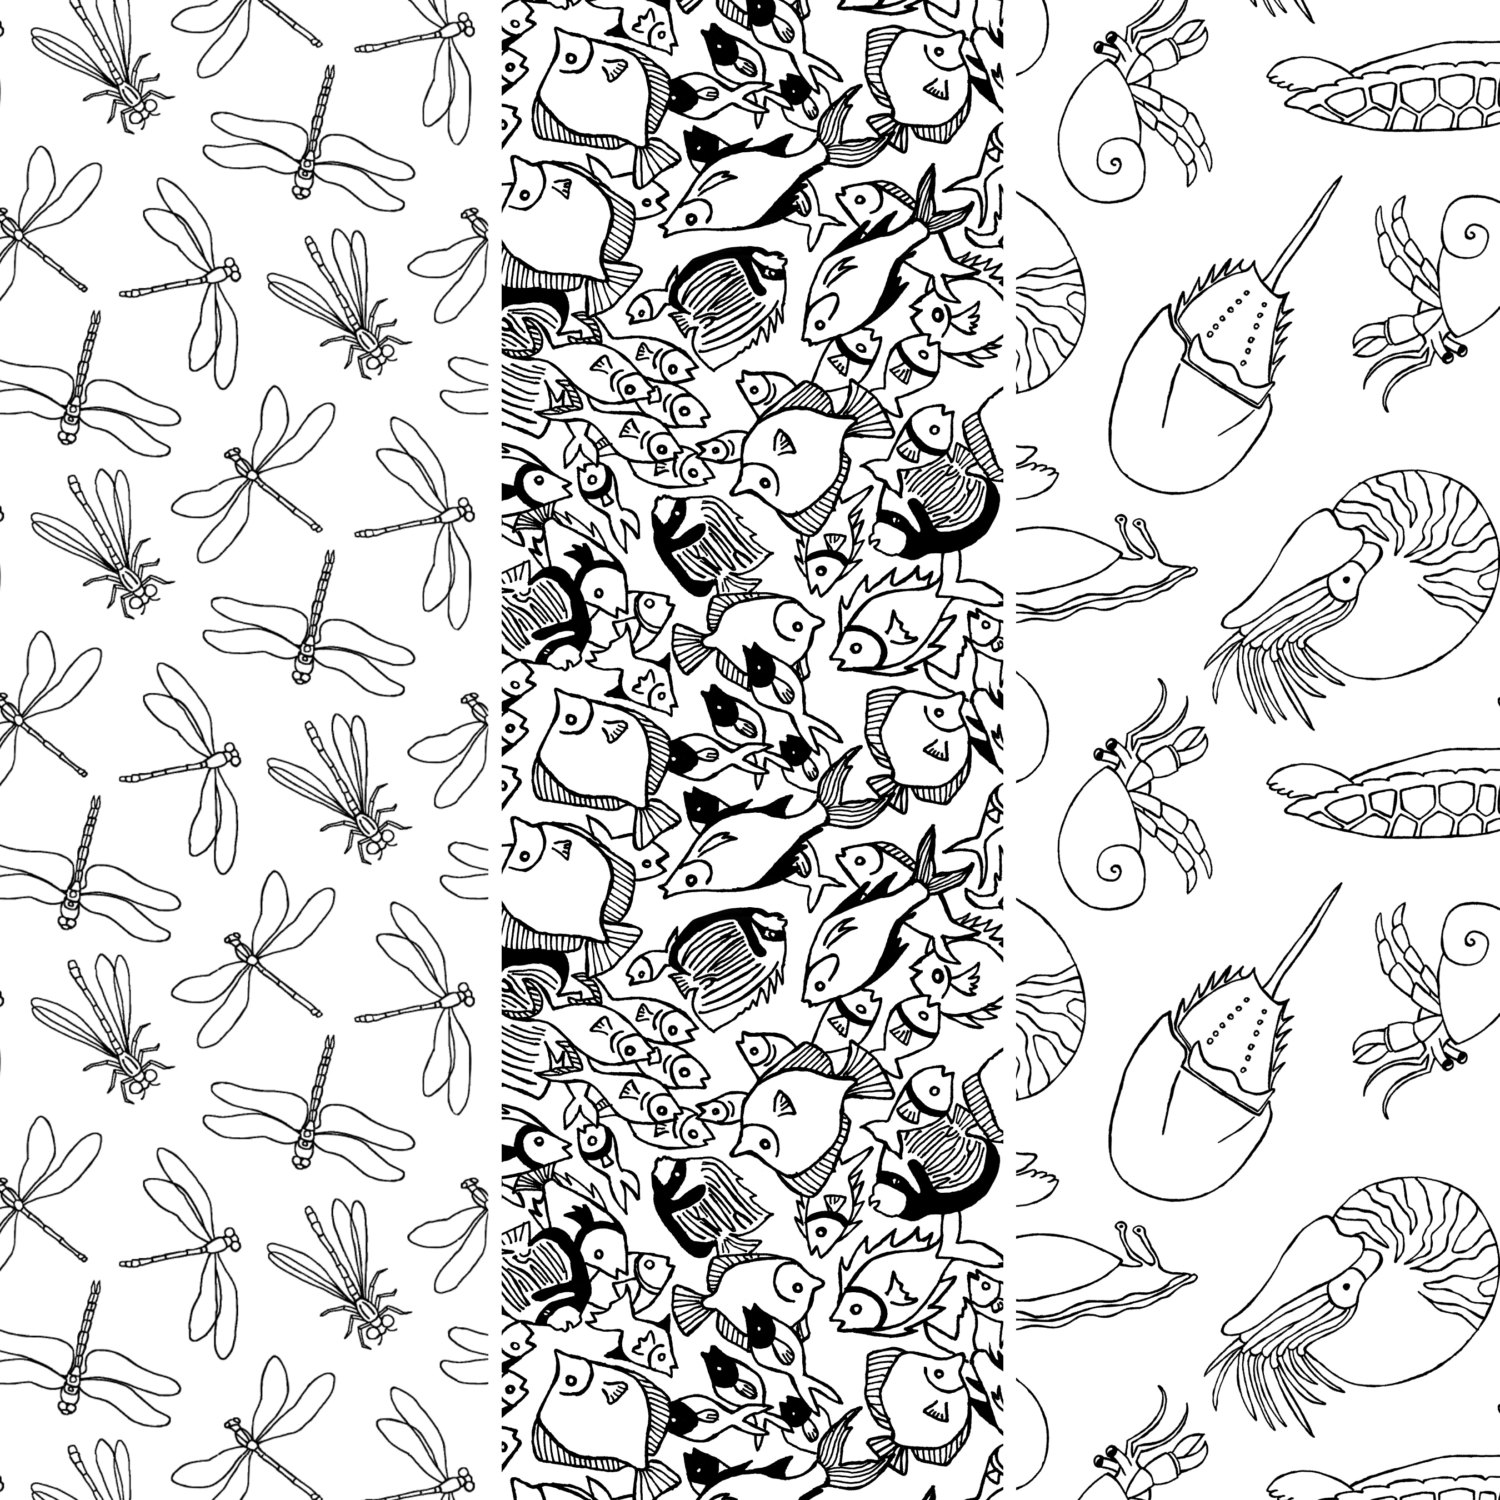 - Water Creatures DIY Paper Ornaments: Color-It-In-Yourself - Craft